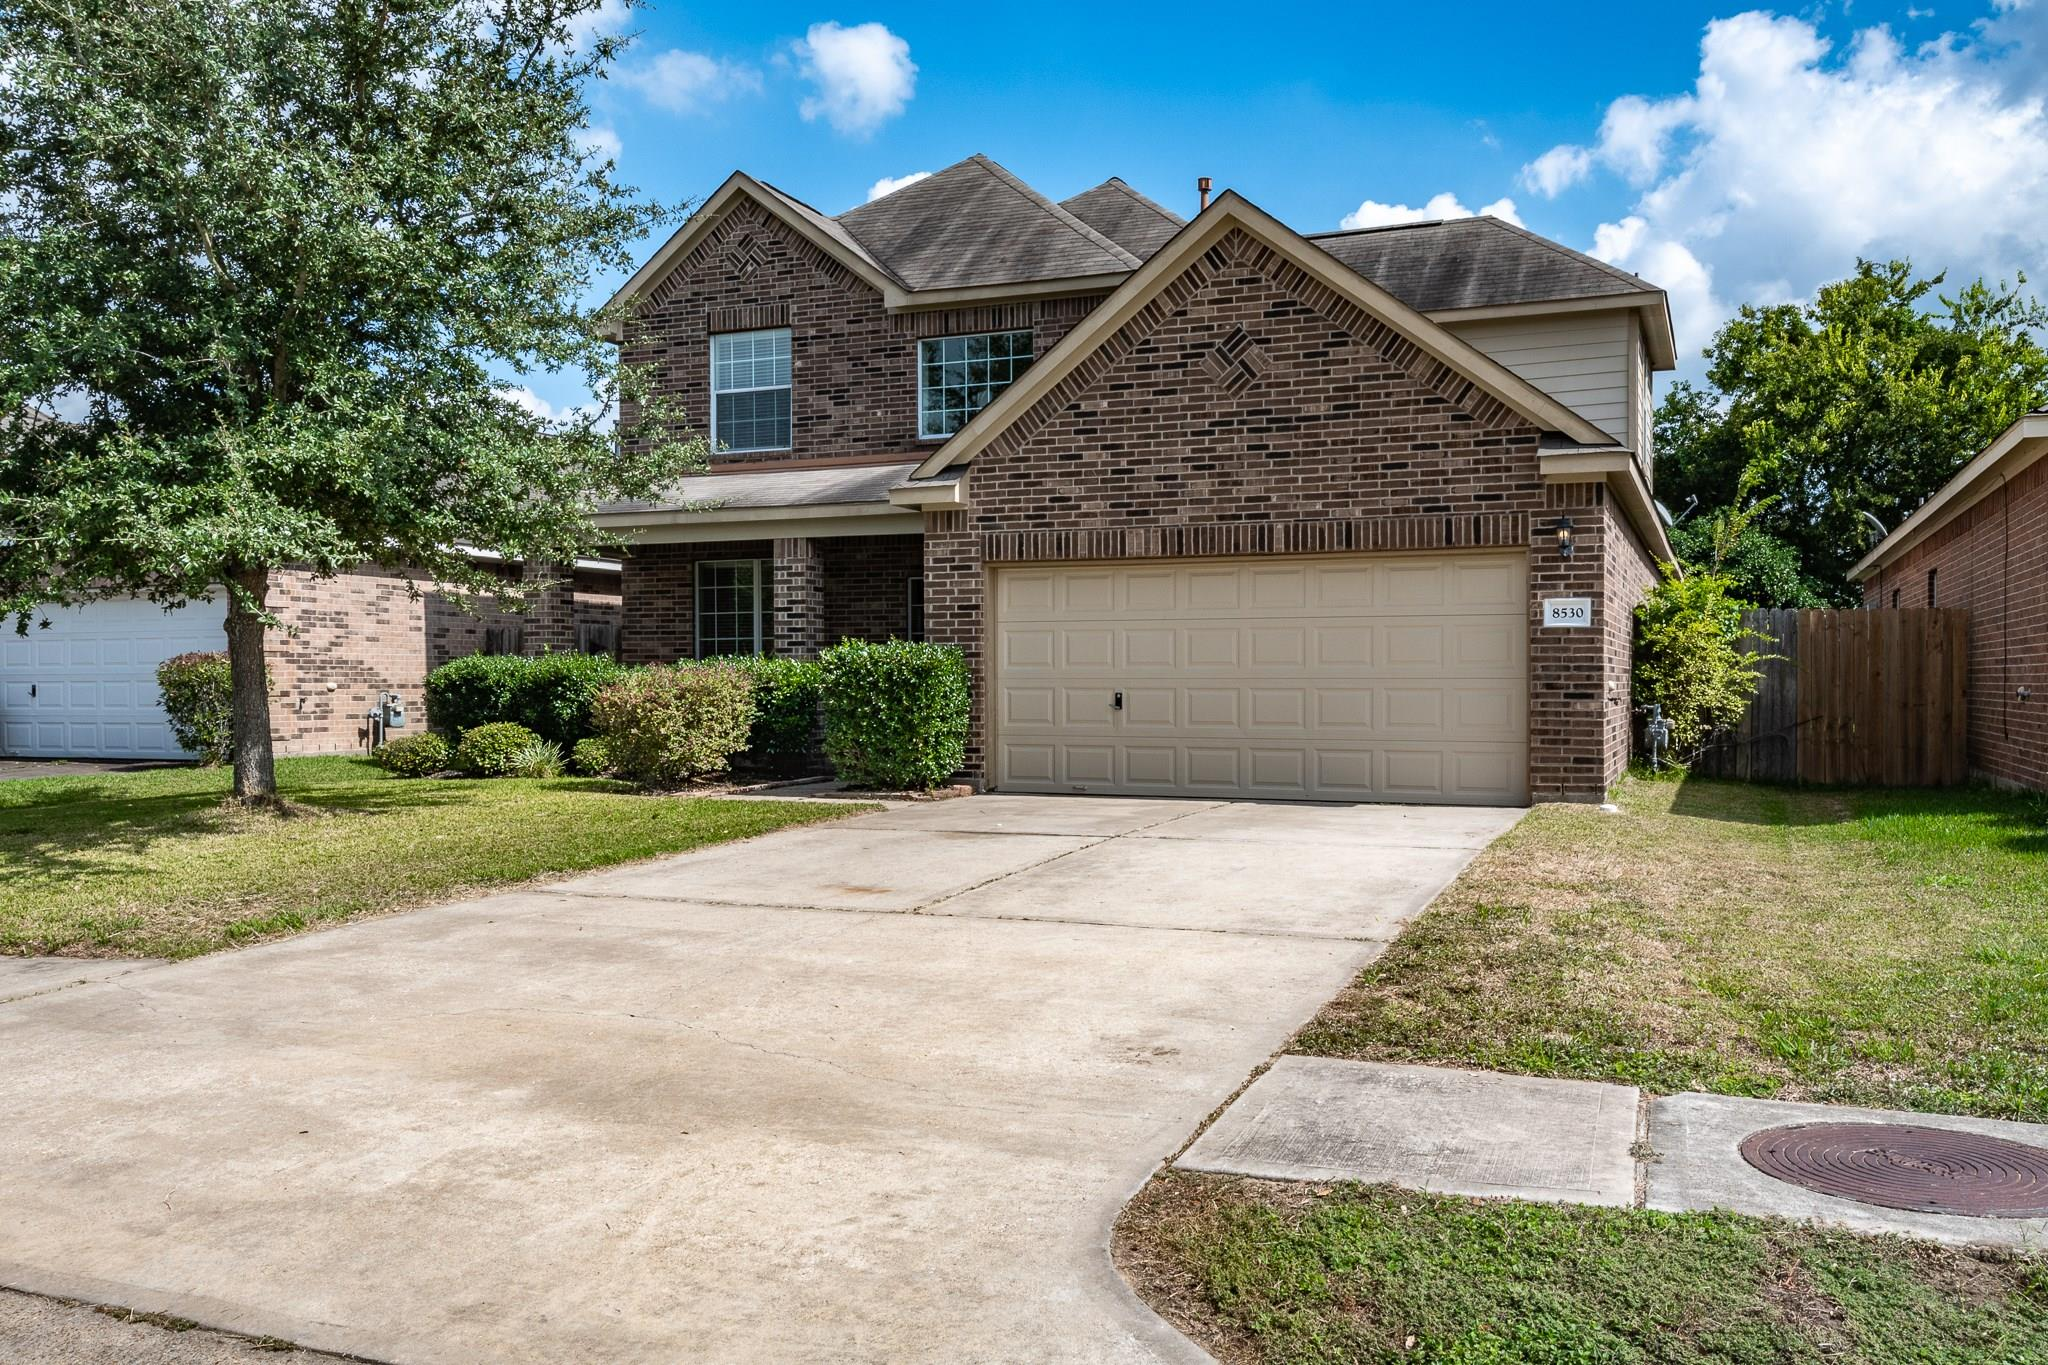 8530 E Highlands Crossing Property Photo - Highlands, TX real estate listing